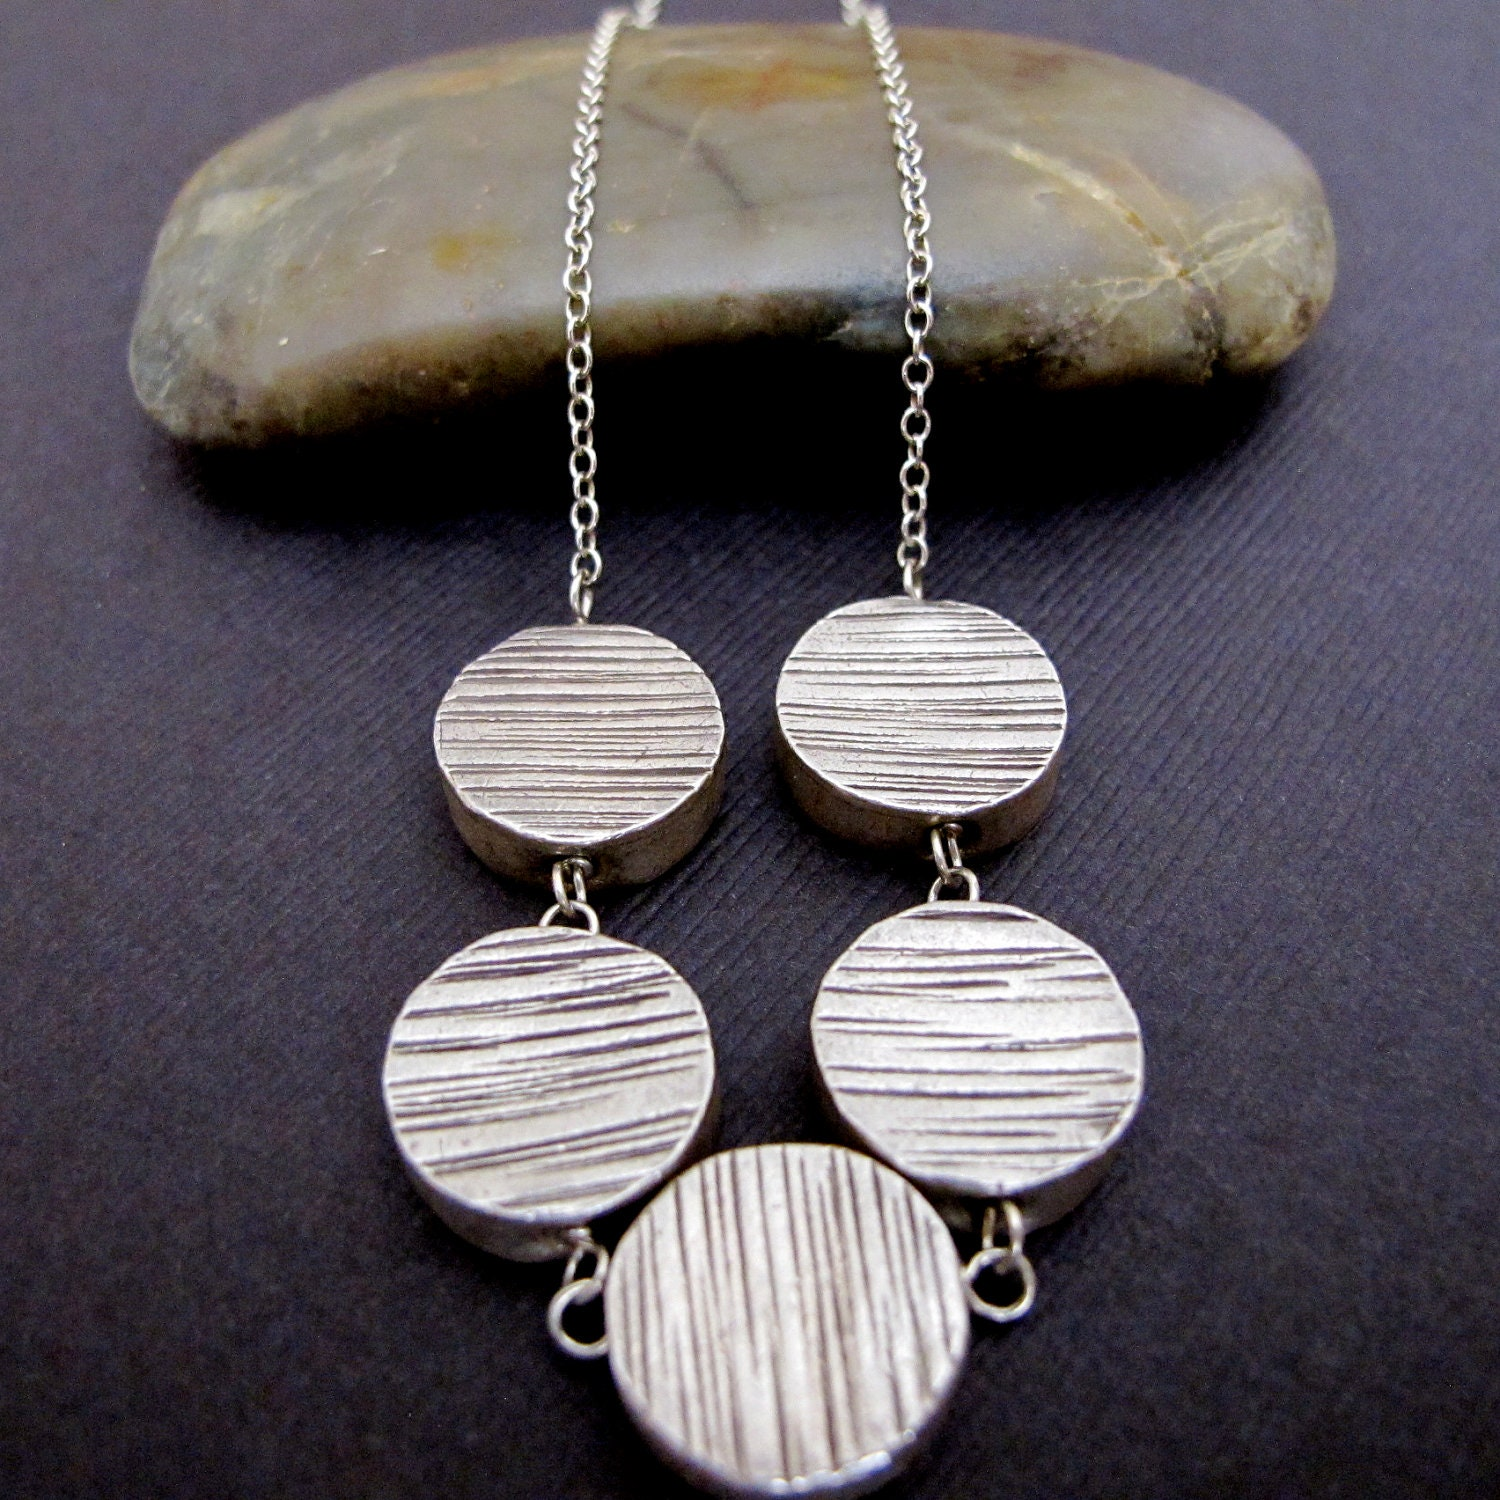 Woodgrain Silver Disc Necklace